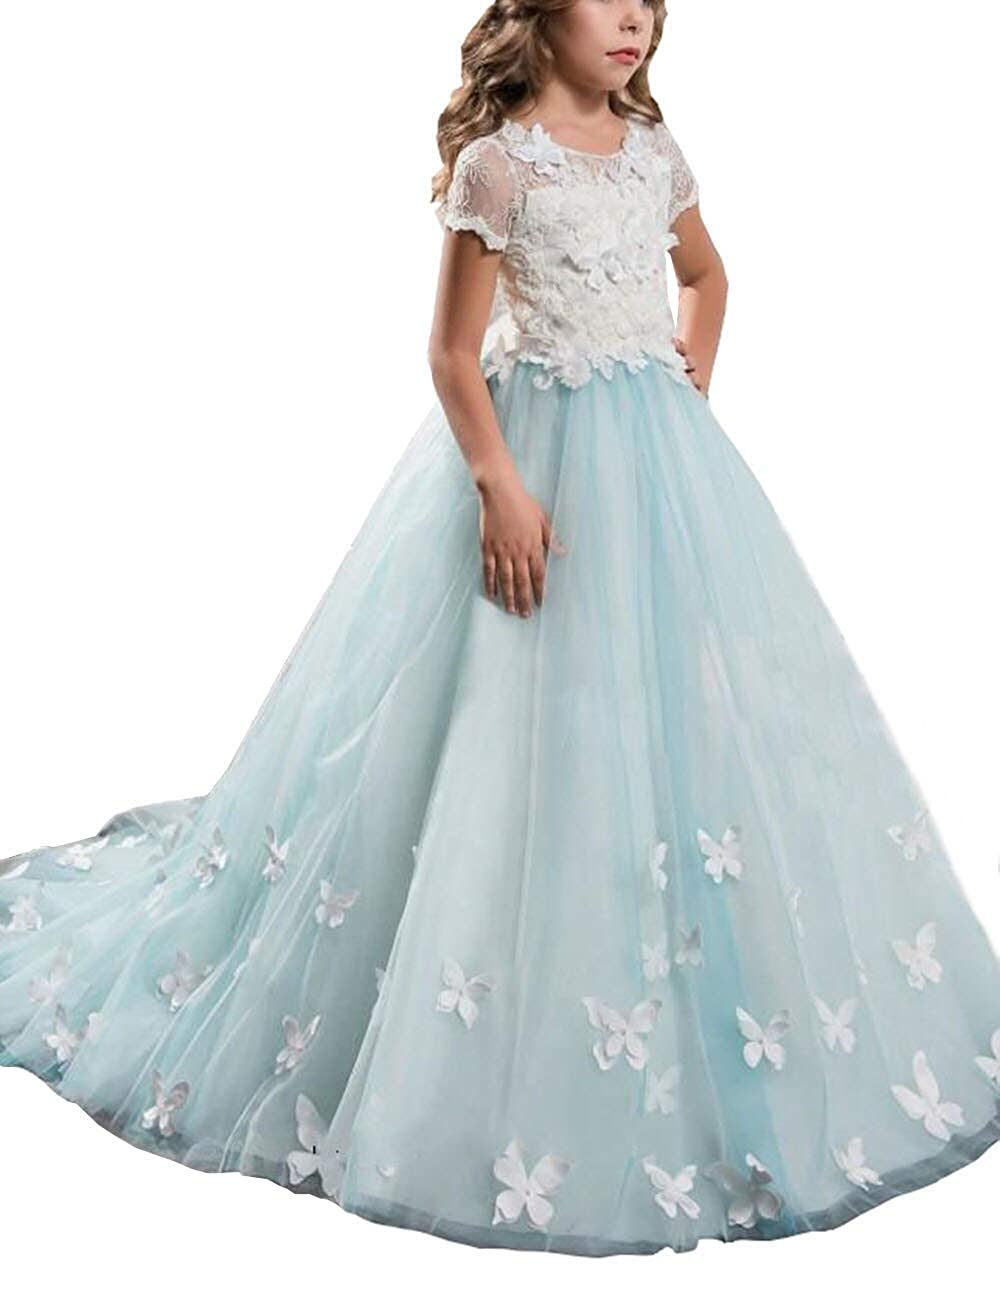 4bab13a91 Amazon.com: Mulanbridal Lace Flower Girl Dress Butterfly Kids First Communion  Gown Princess Wedding Royal Train: Clothing